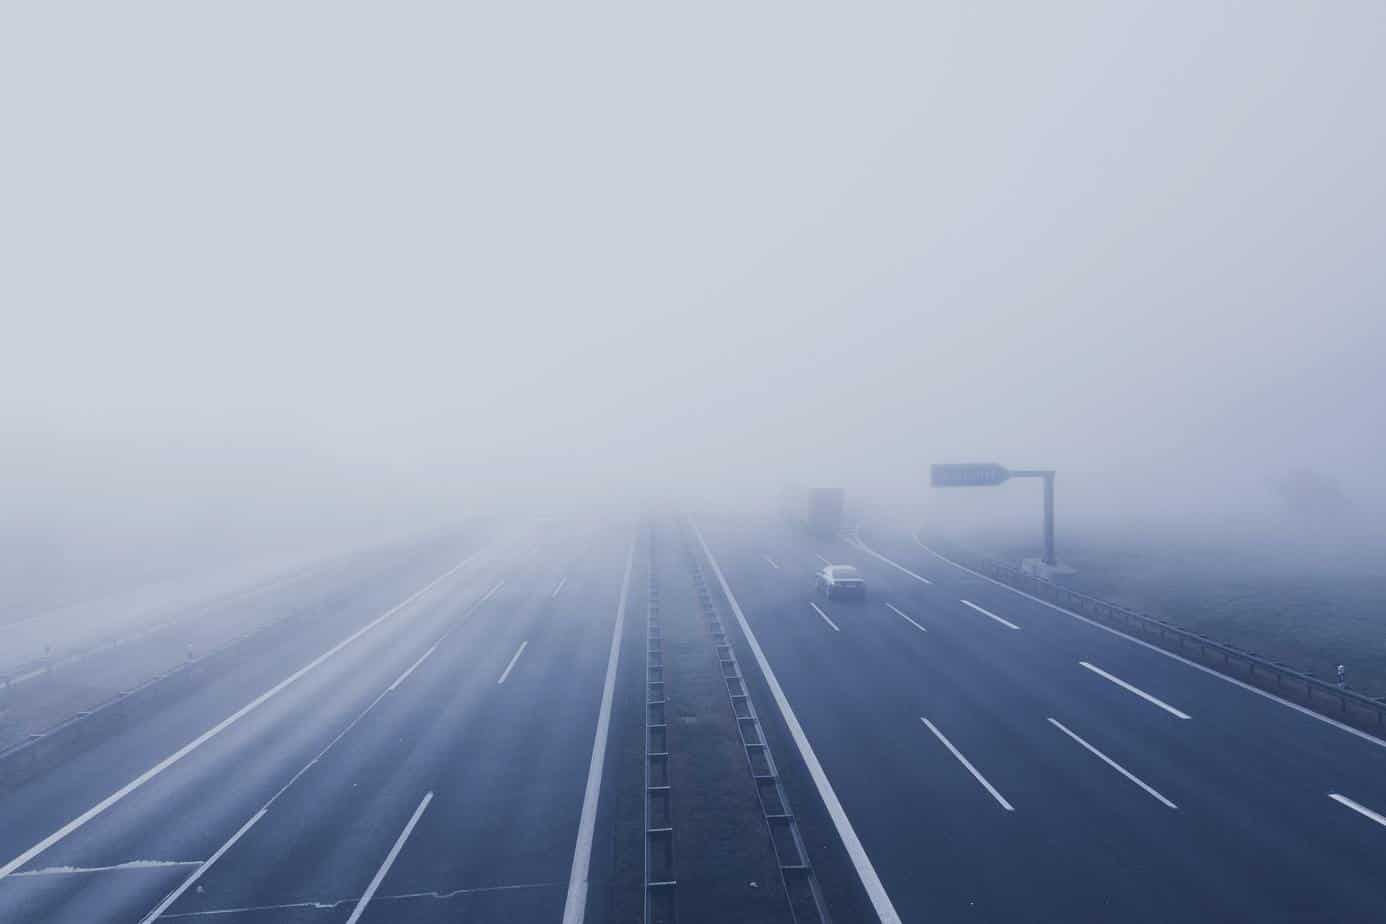 avoid highway hypnosis - truck entering the fog of an empty highway